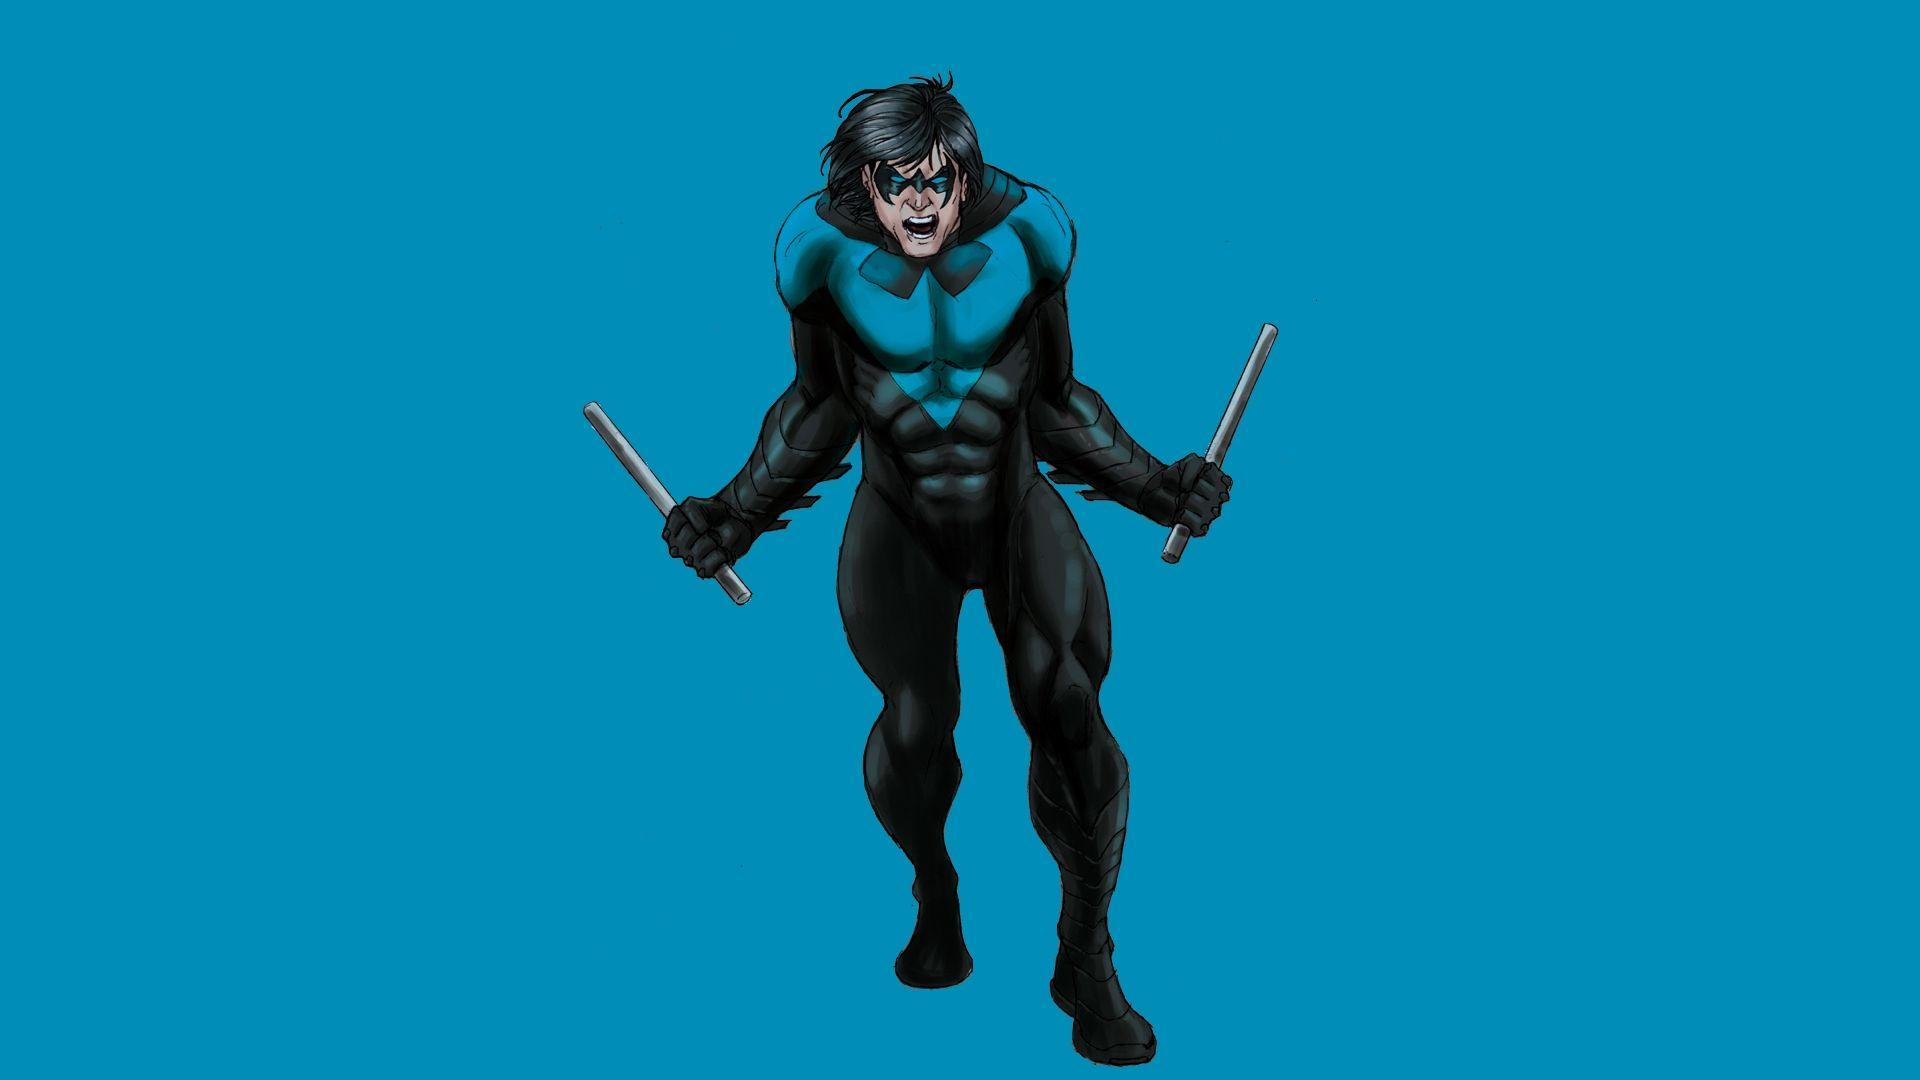 Create Iphone Wallpaper Quote Nightwing Wallpapers Wallpaper Cave